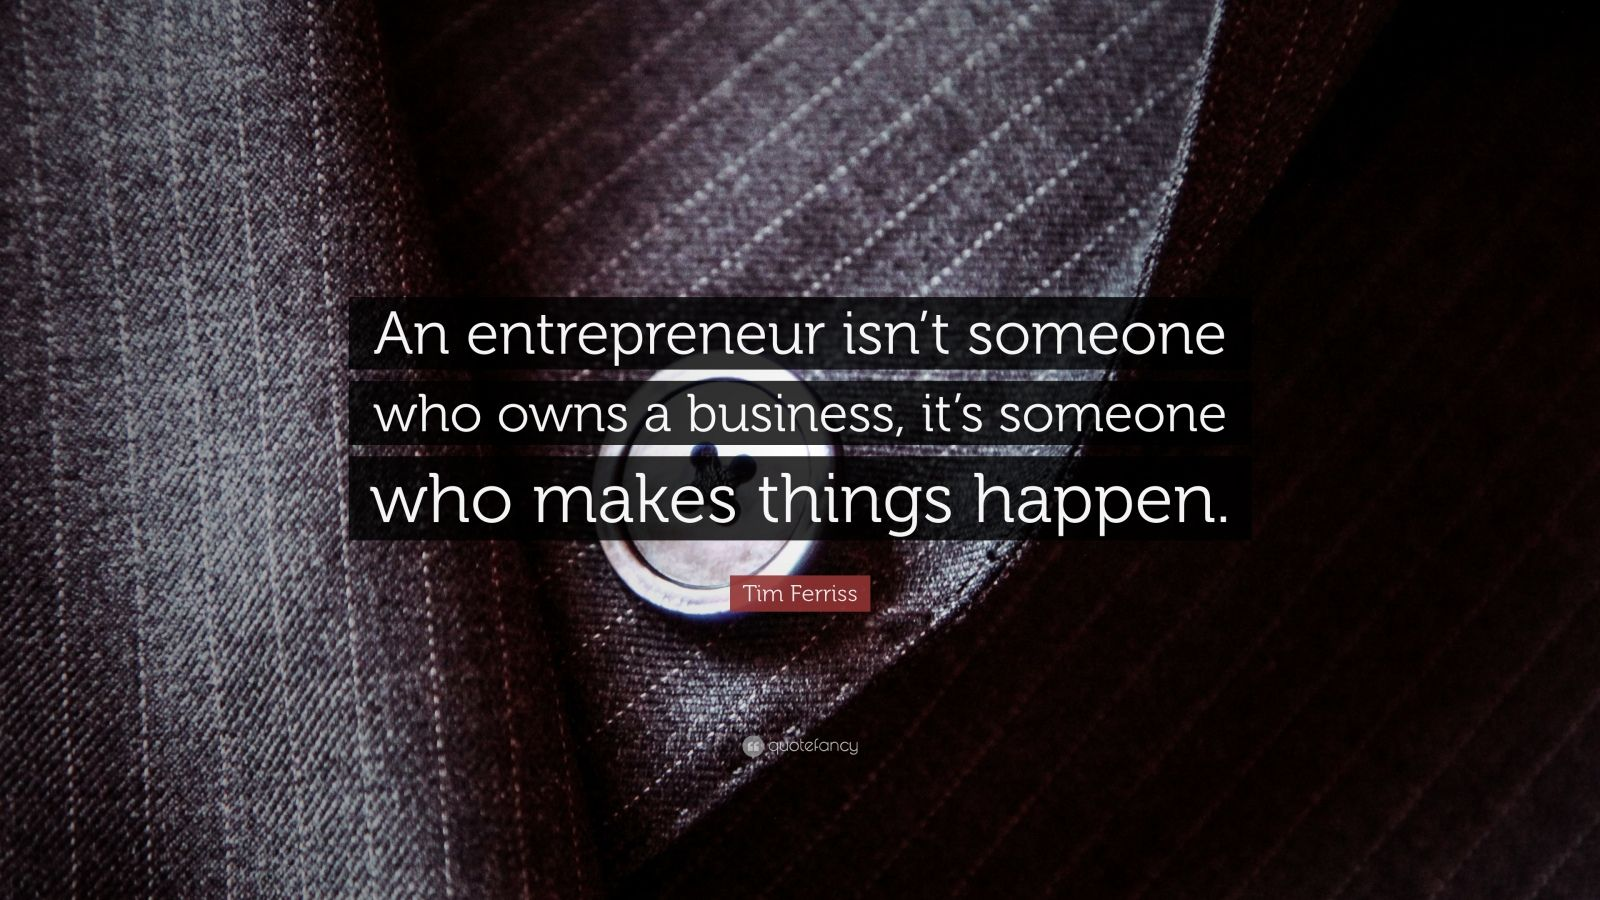 Inspirational Entrepreneurship Quotes An Entrepreneur Isnt Someone Who Owns A Business